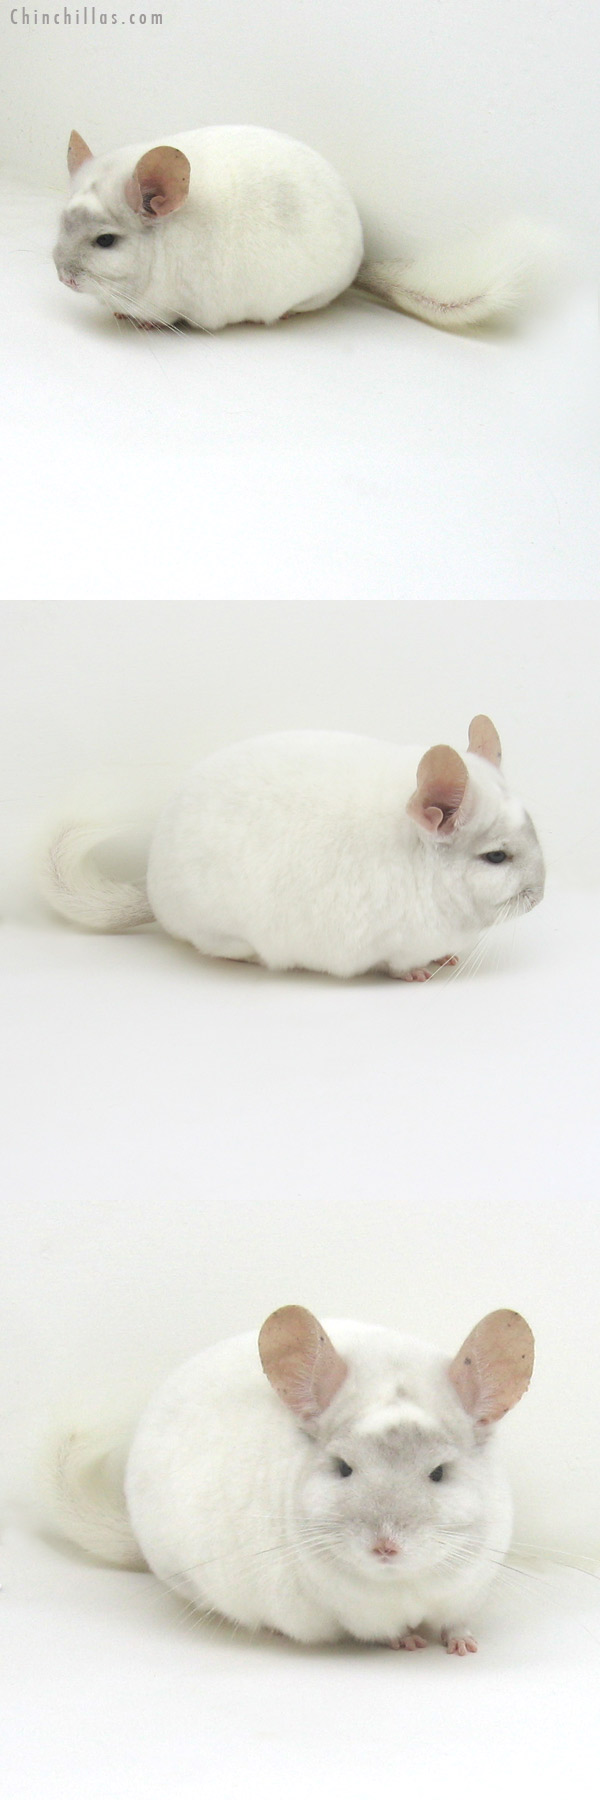 11115 Herd Improvement Quality Beige and White Mosaic Male Chinchilla